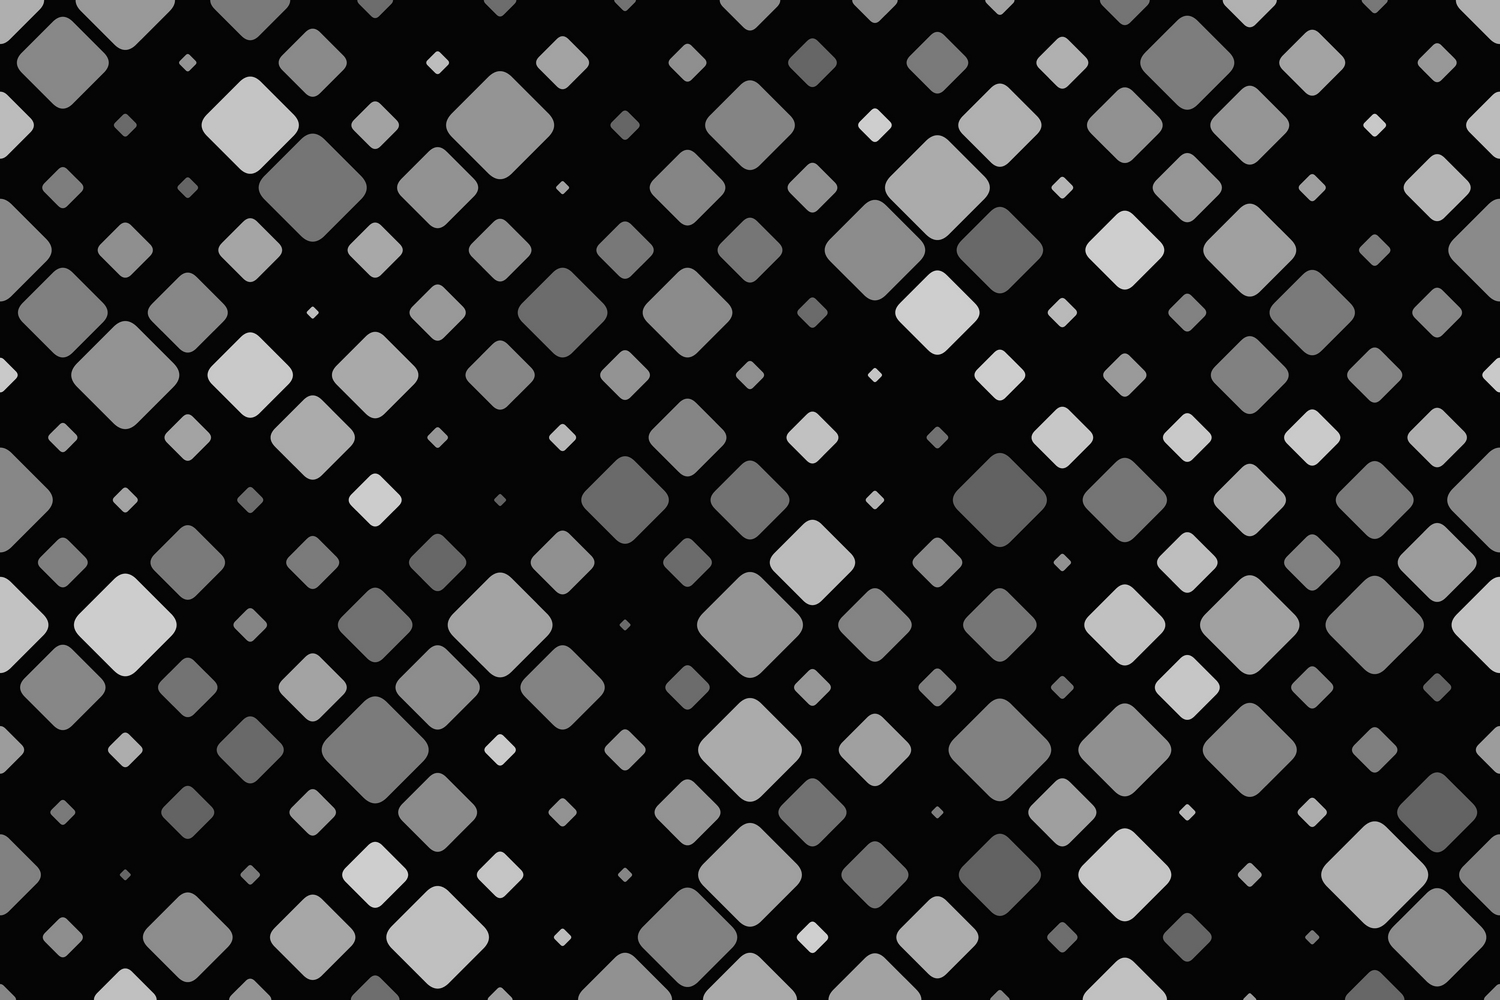 16 Seamless Square Backgrounds AI, EPS, JPG 5000x5000 example image 5